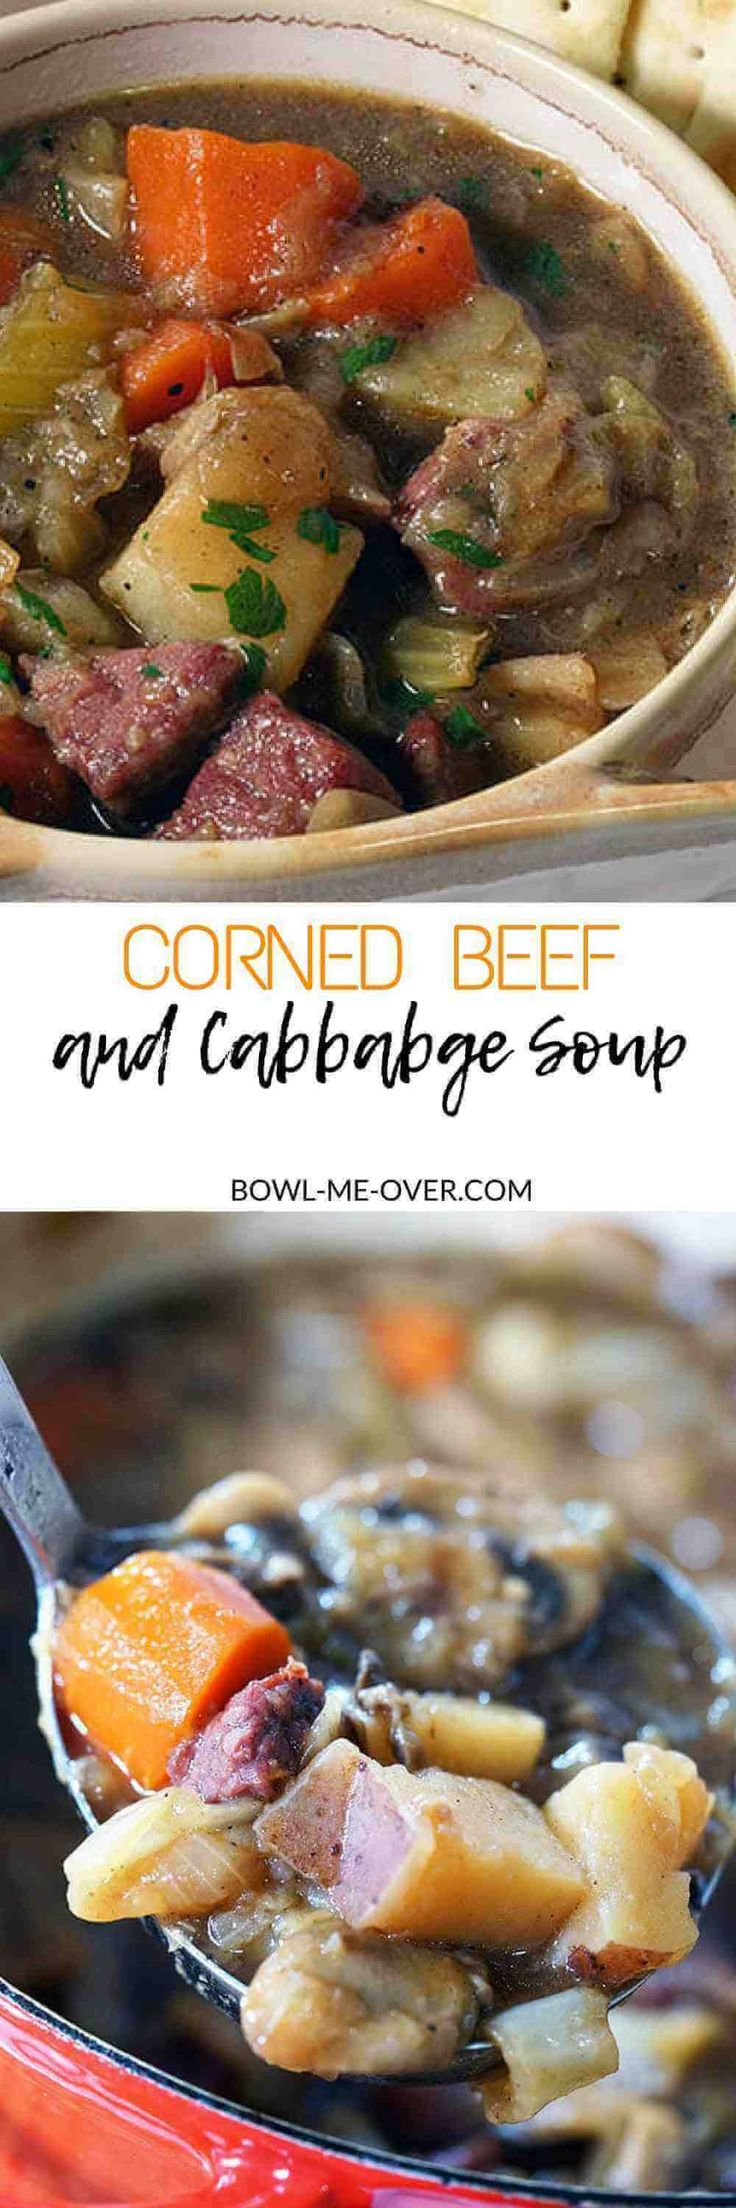 Corned Beef and Cabbage Soup is a savory, hearty meal. Full of delicious winter vegetables and tender corned beef this is the MOST delicious stew to enjoy! #cornedbeef #cabbagesoup #bowlmeover #StPatricksDay via @bowlmeover